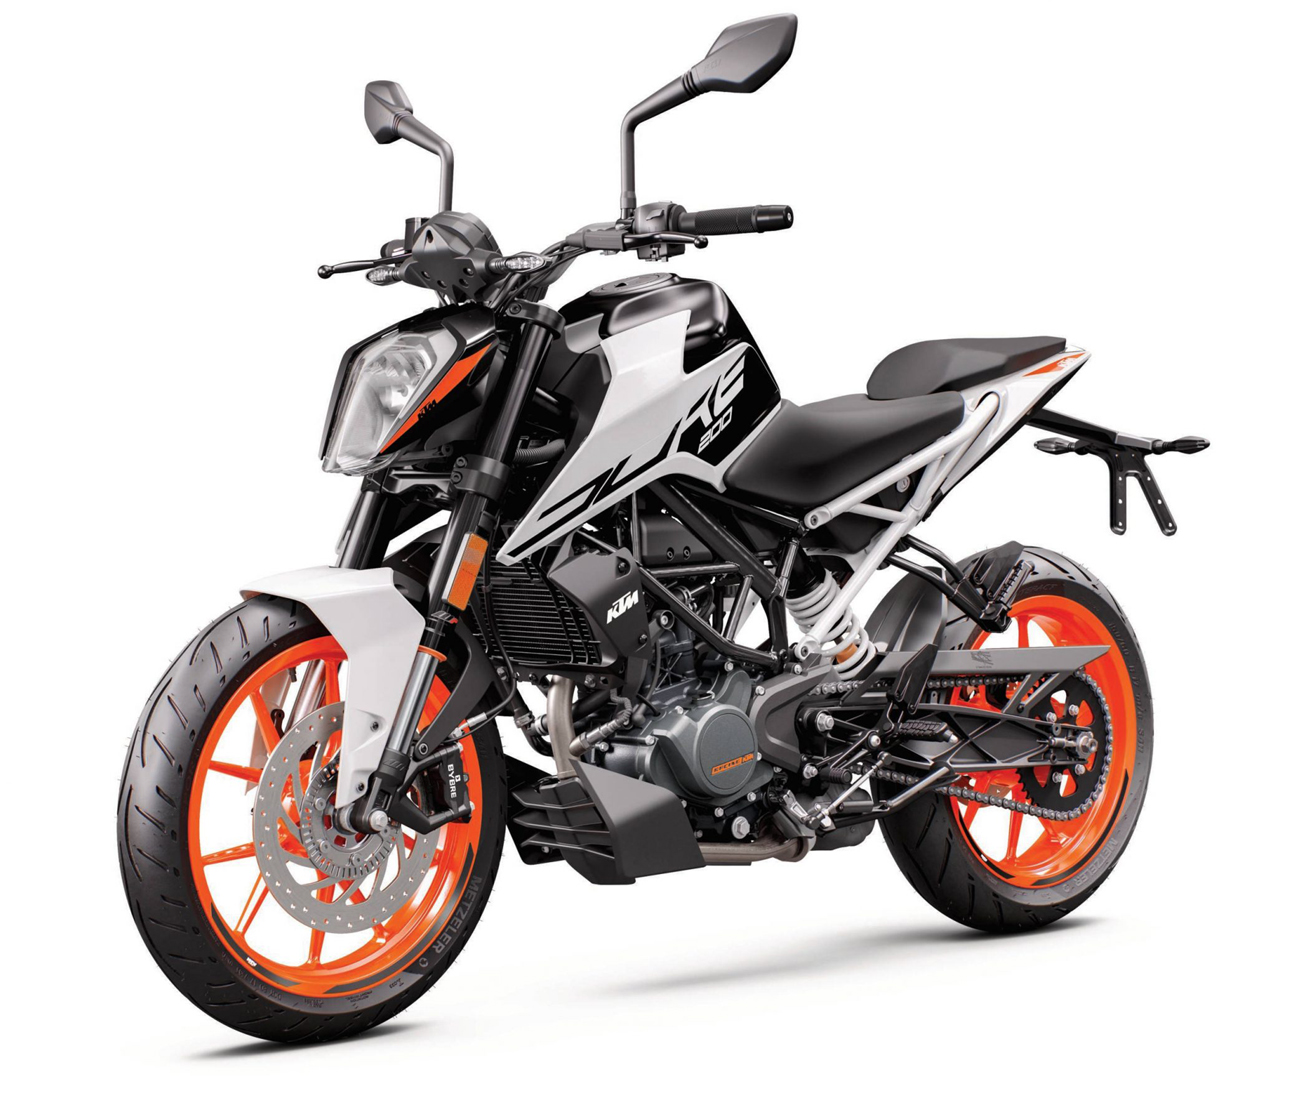 KTM 200 Duke / ABS technical specifications